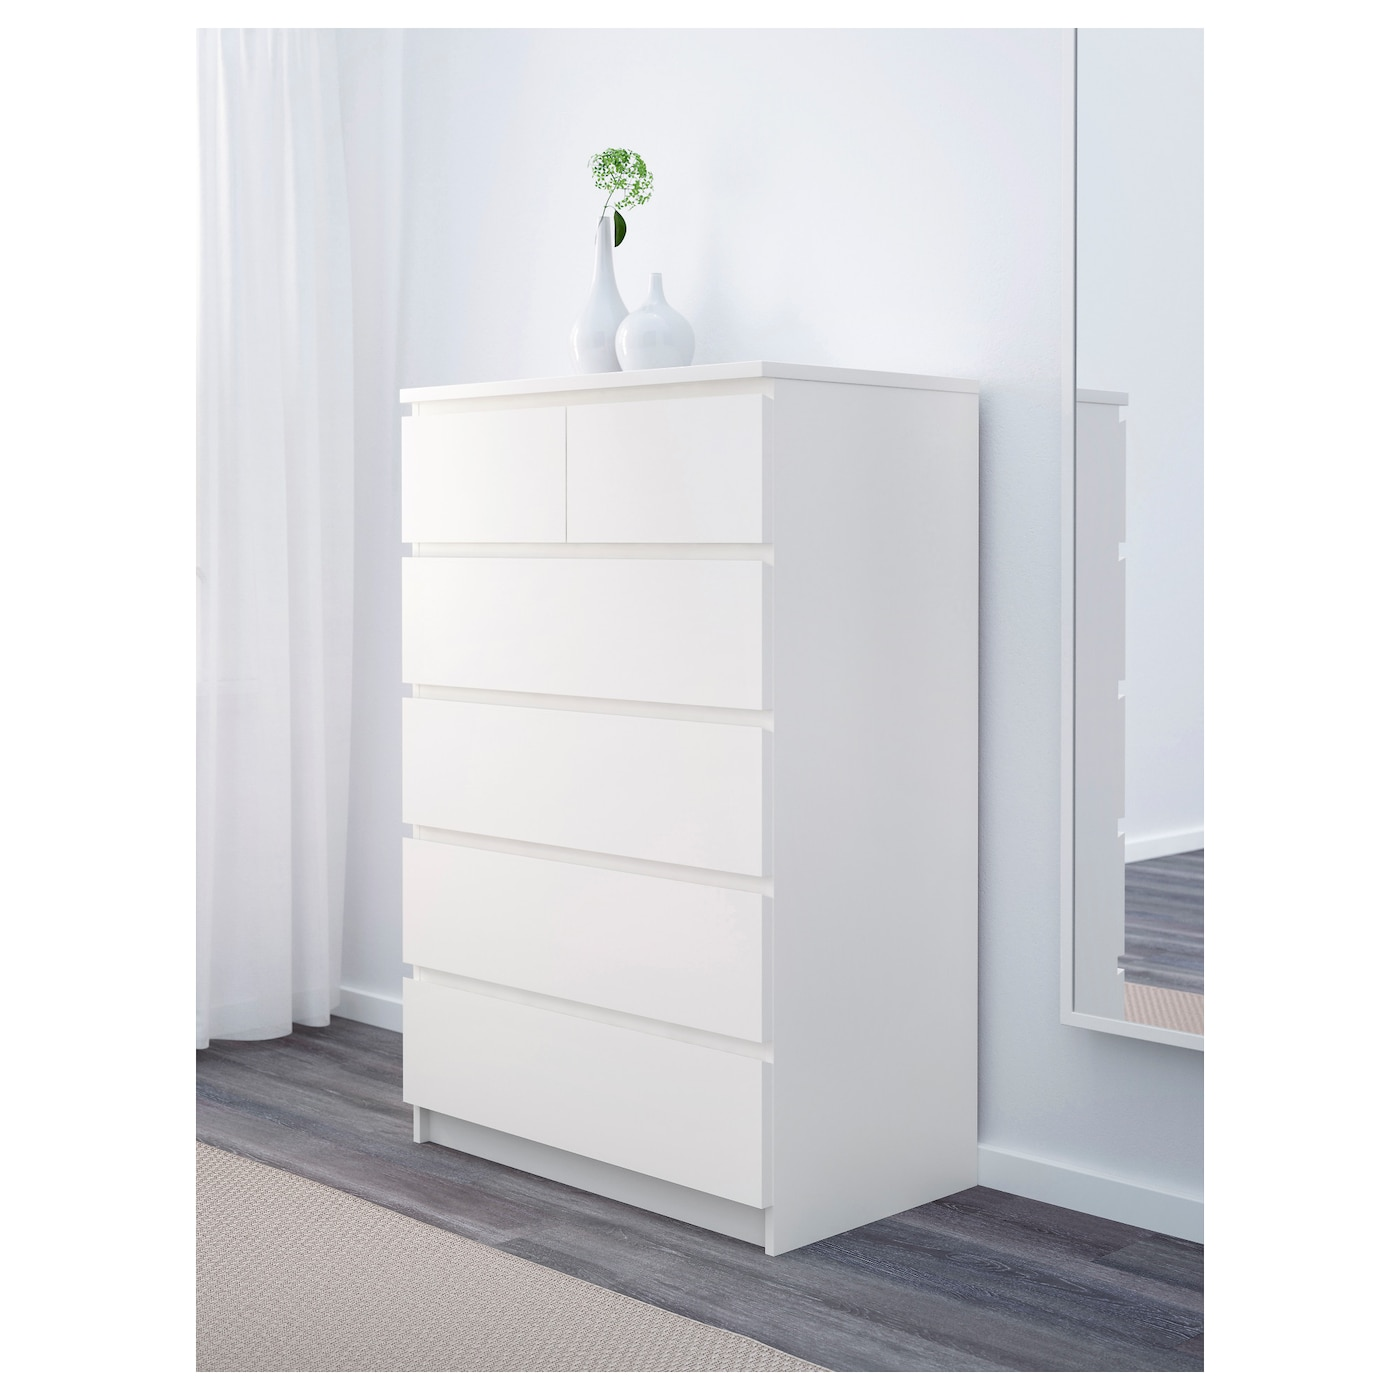 Superieur IKEA MALM Chest Of 6 Drawers Smooth Running Drawers With Pull Out Stop.